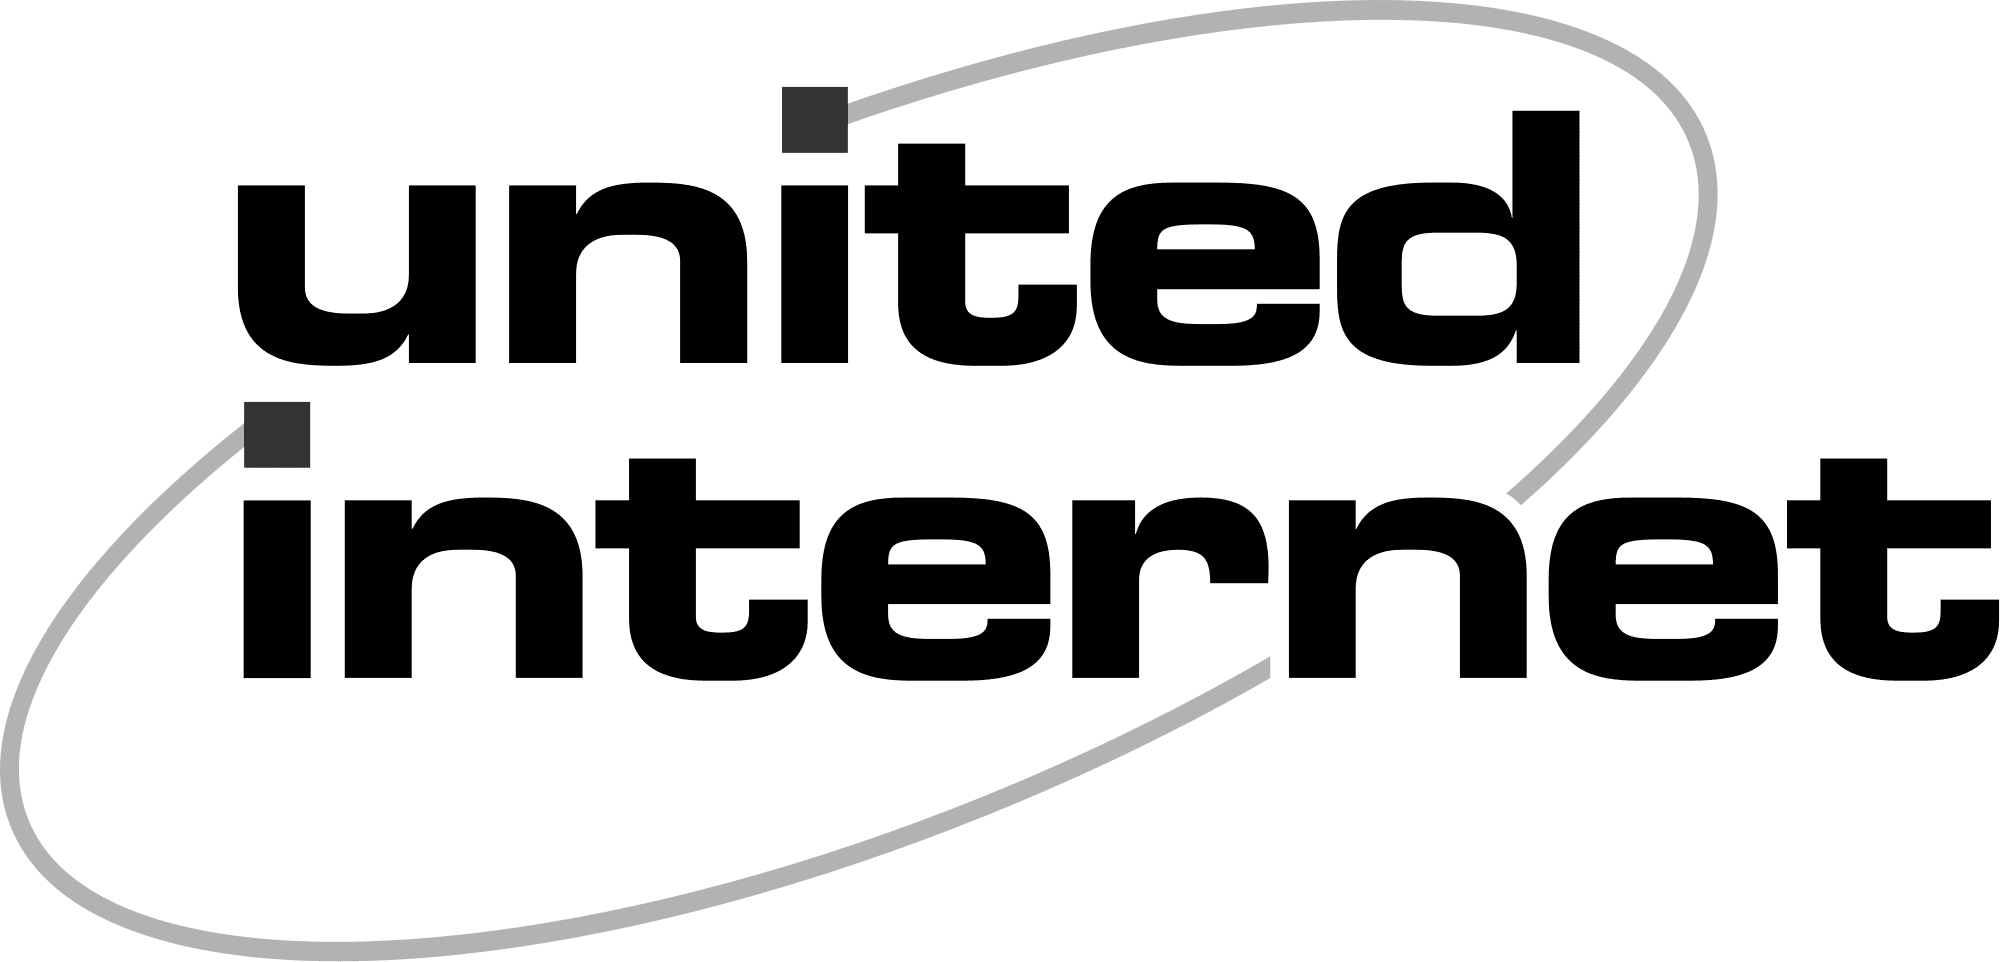 logo of United Internet